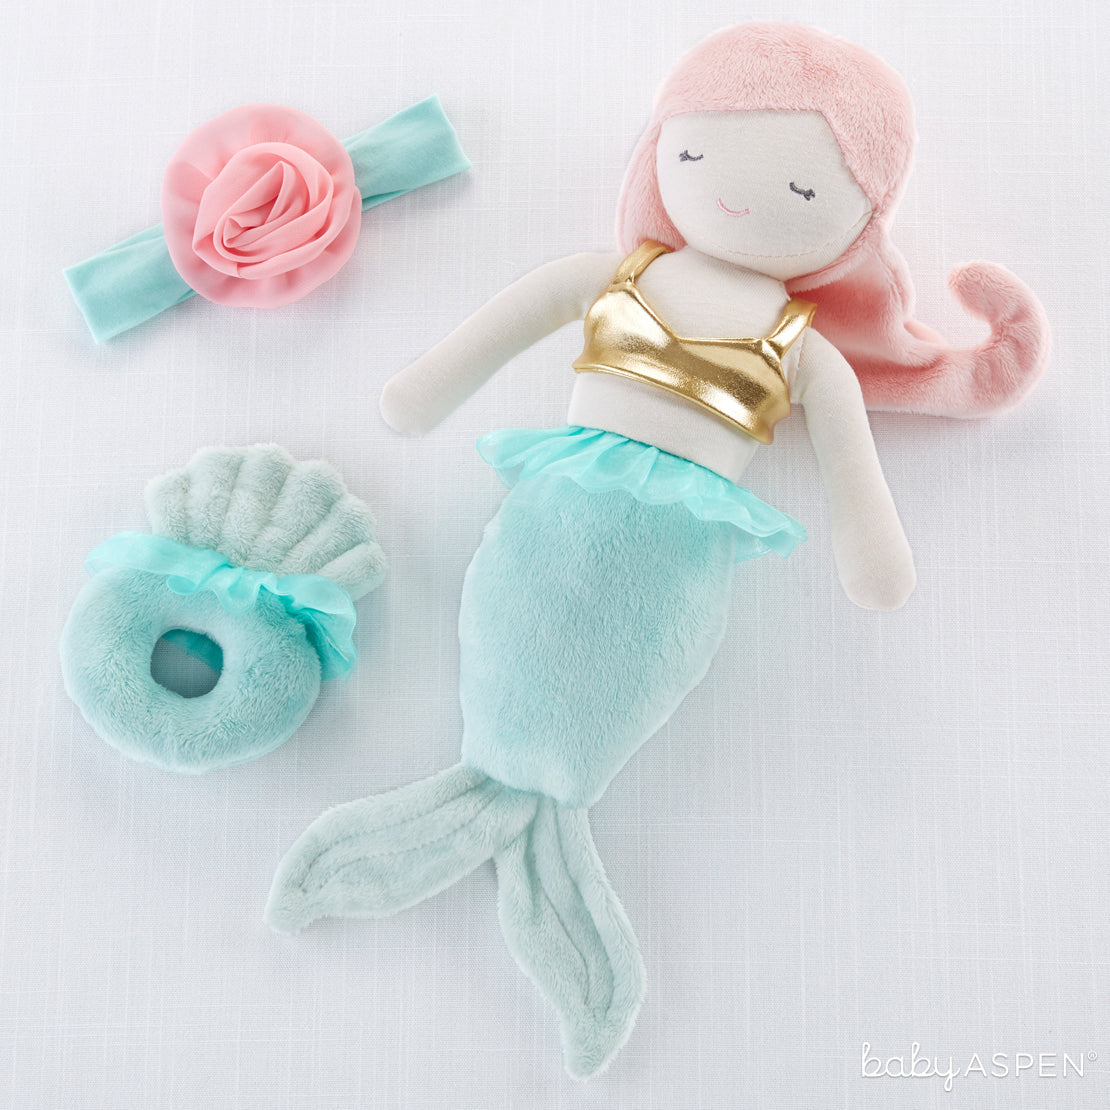 Mia The Mermaid | Plush Friends Every Baby Will Love | Baby Aspen